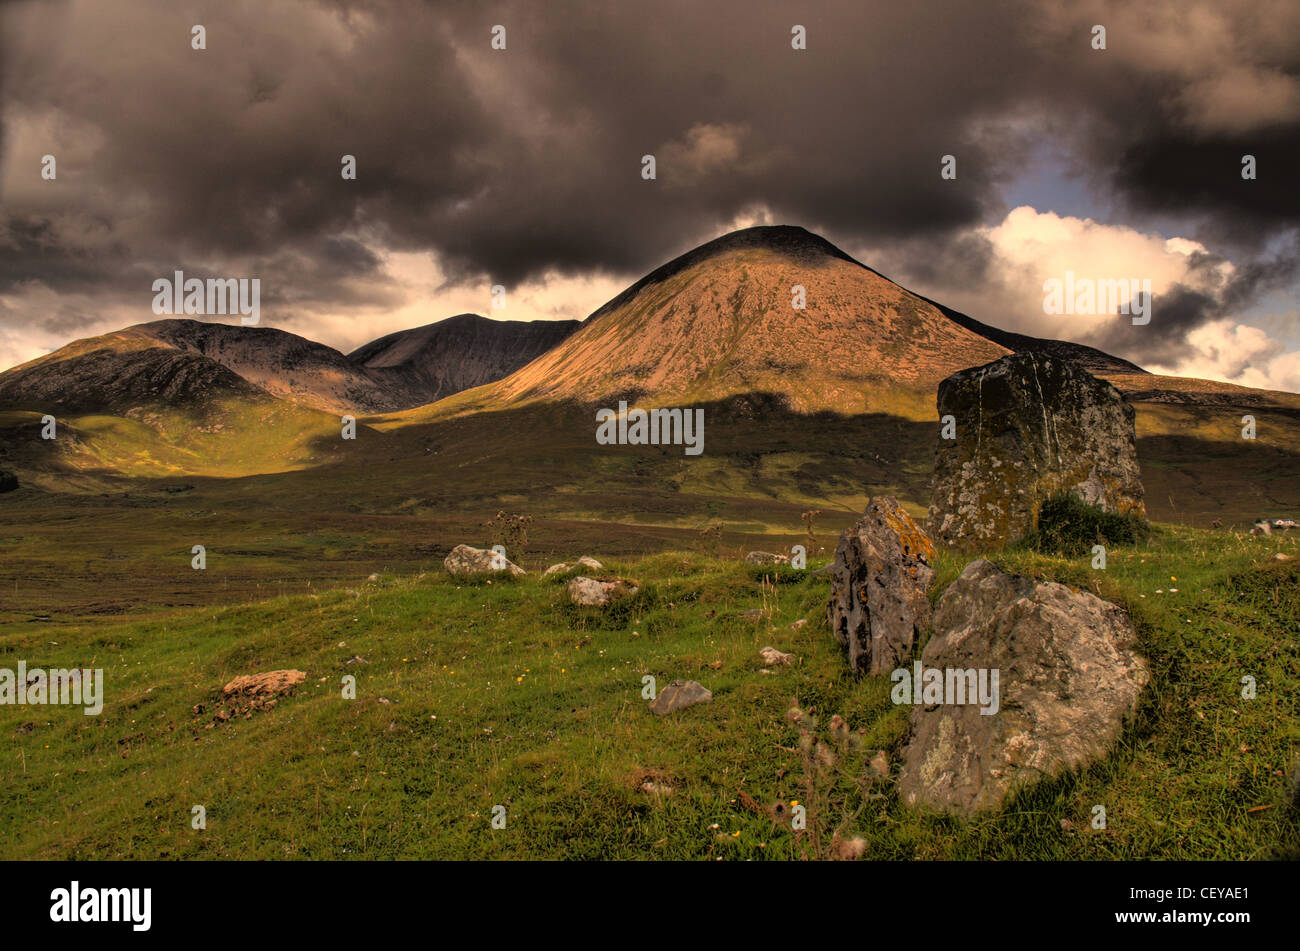 Road to Elgol, Isle of Skye, Scotland Landscape - Stock Image